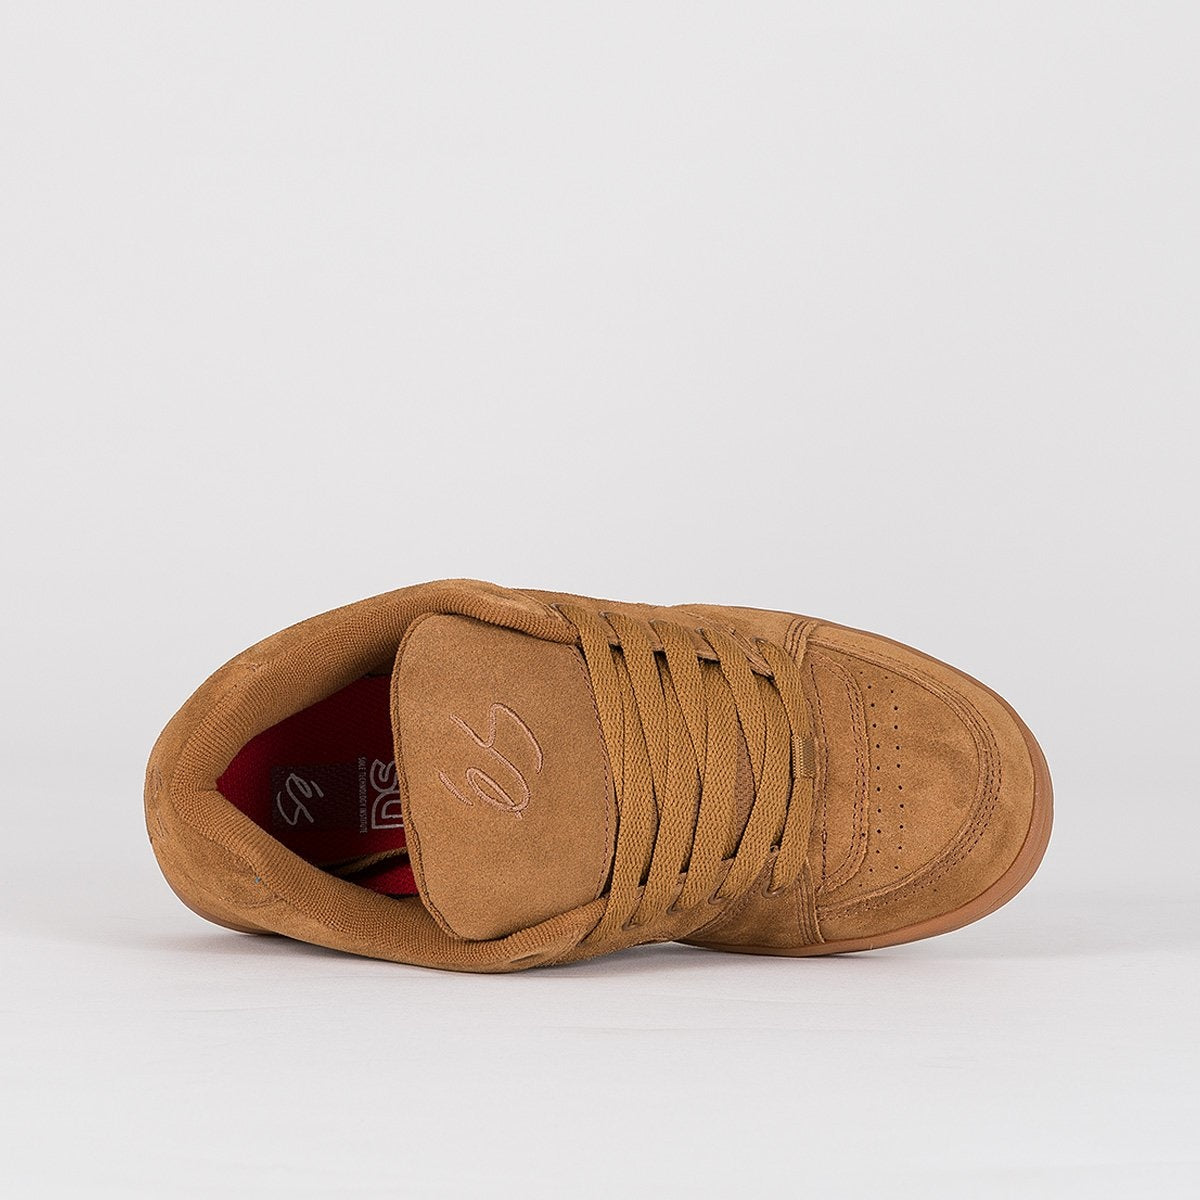 eS Accel OG Brown/Gum - Footwear